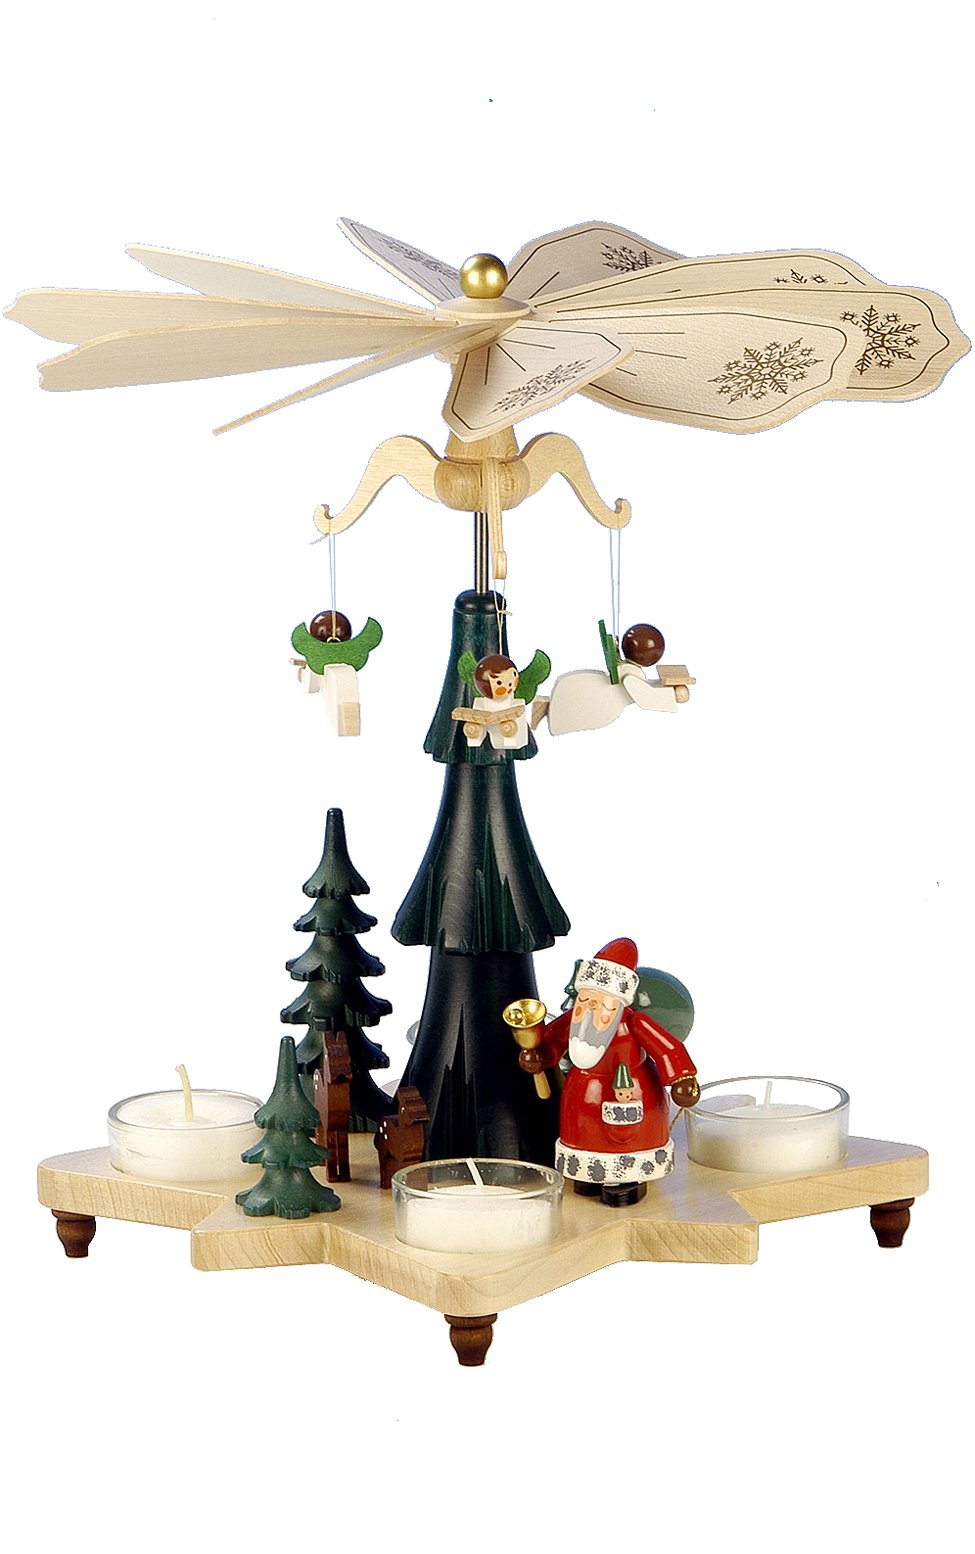 33-303 - Christian Ulbricht Pyramid - Santa with Angels - 10.5''''H x 10''''W x 10''''D